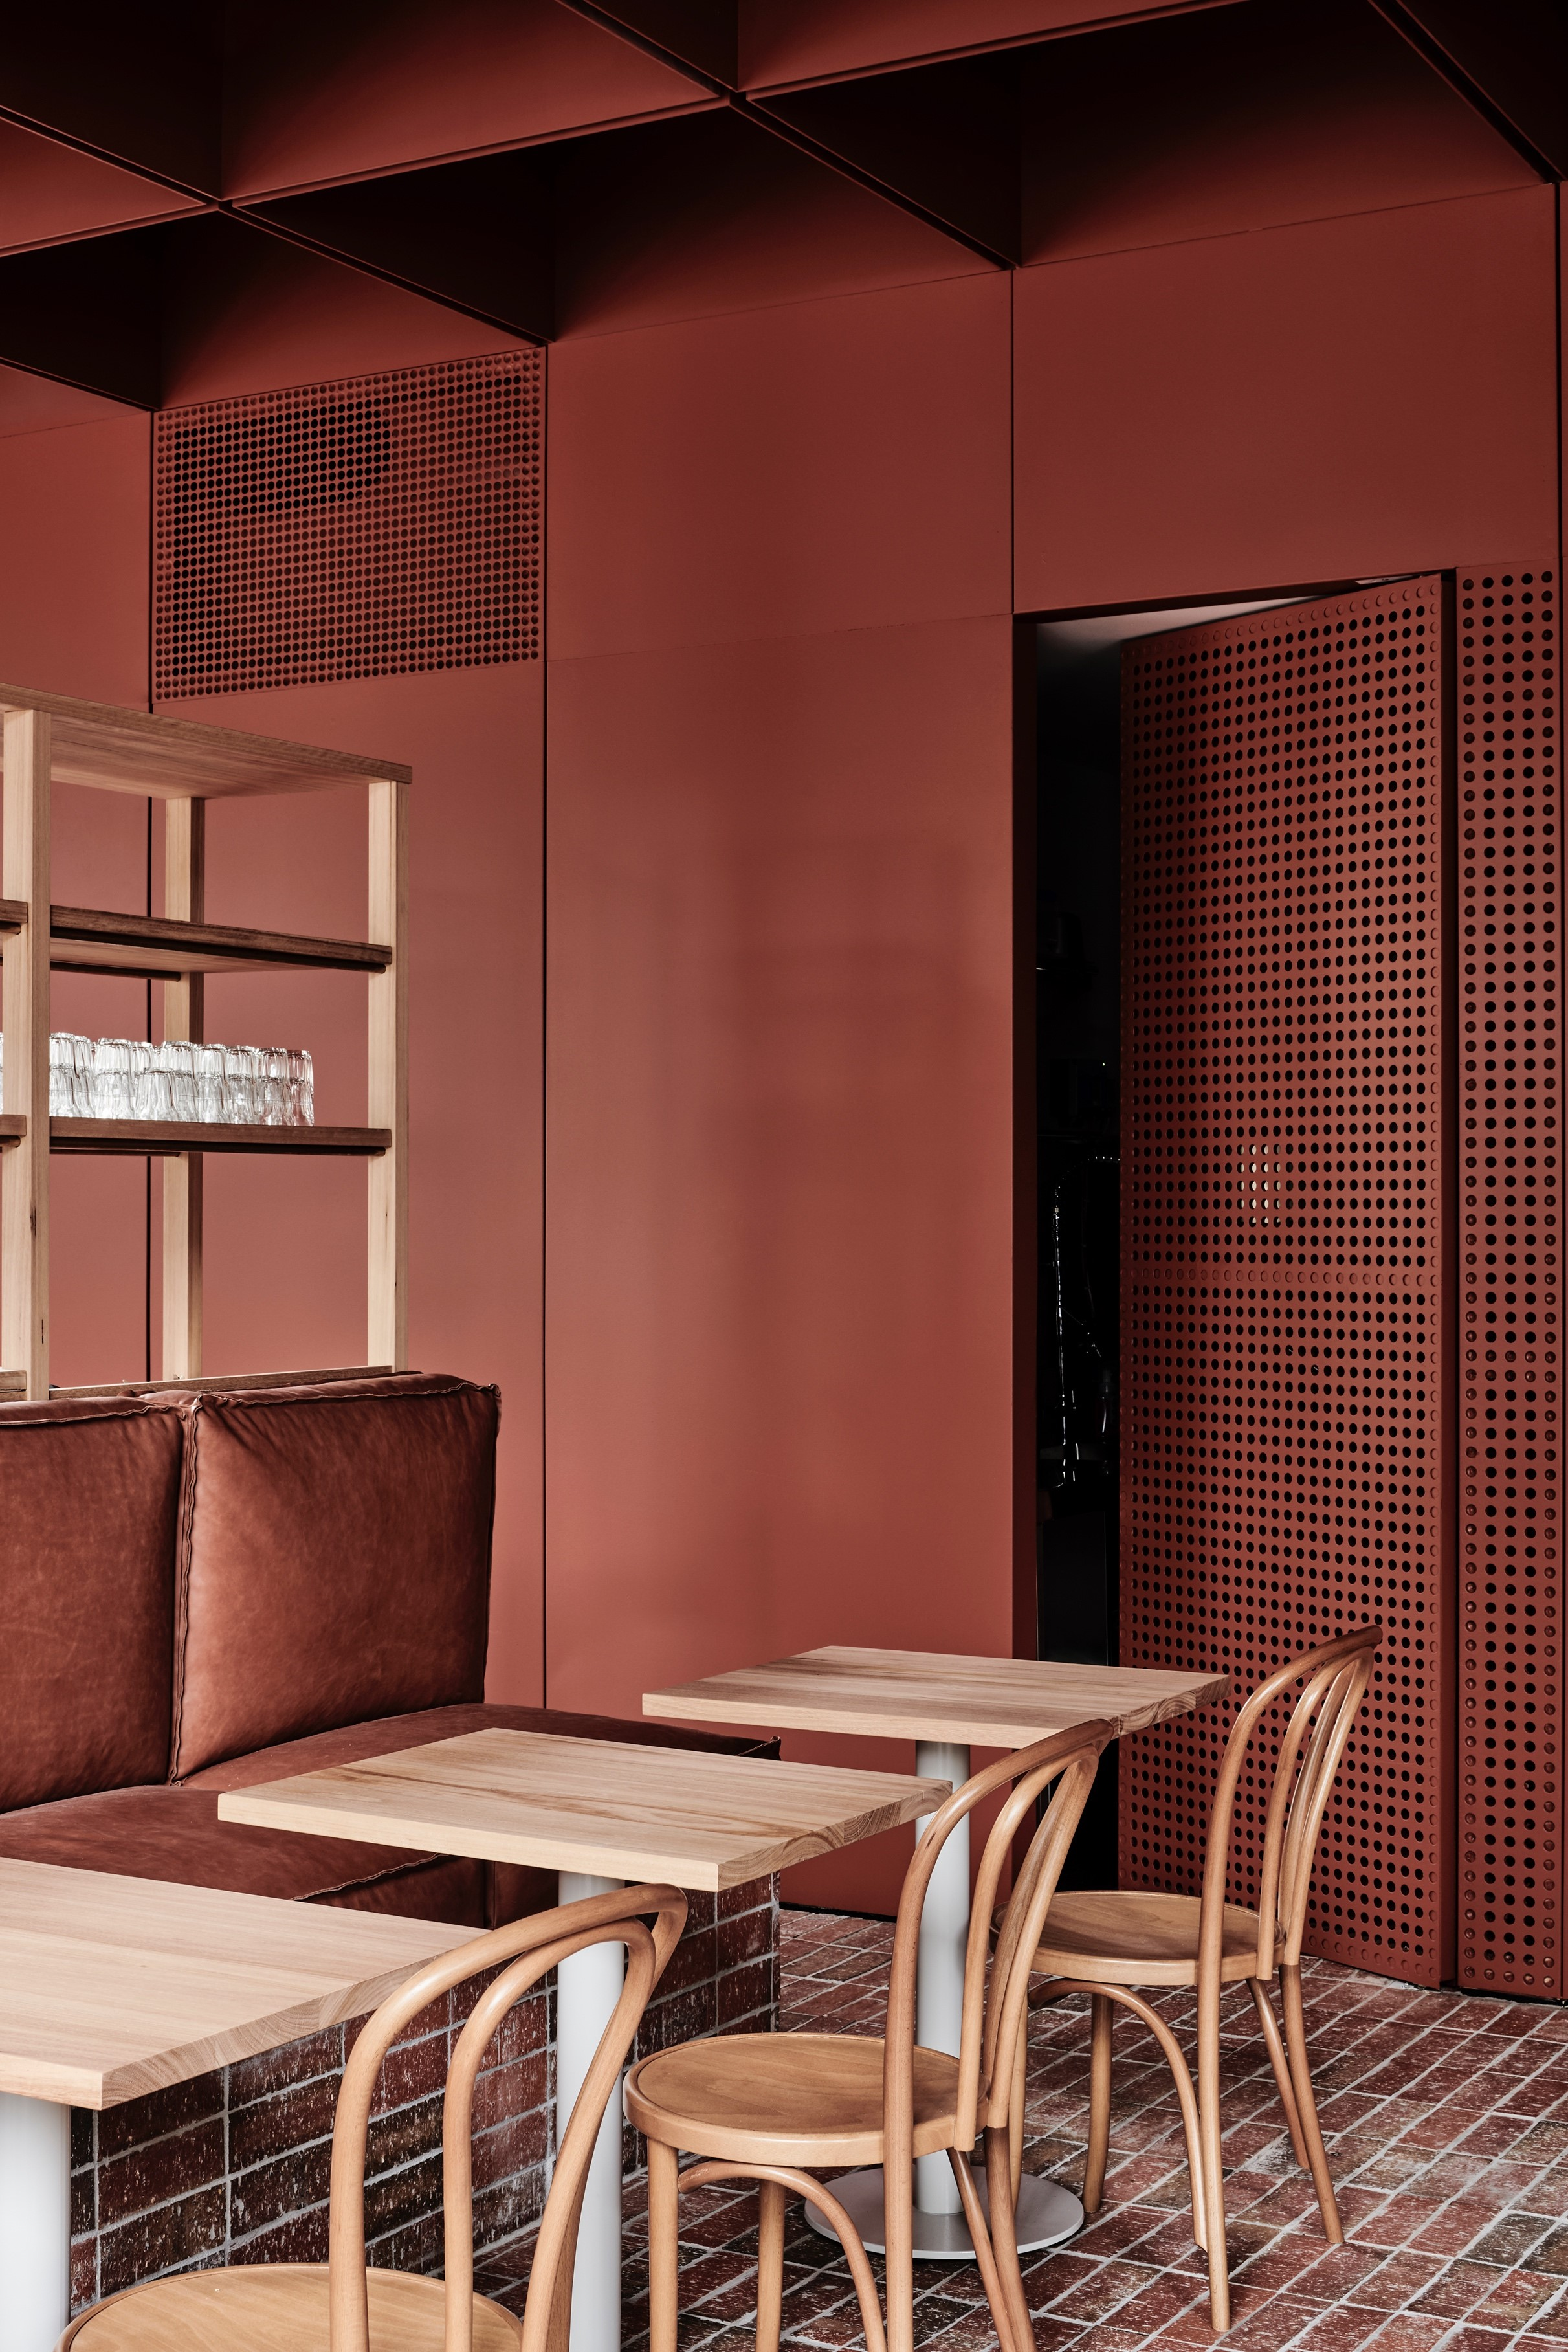 The Buzzing Ambience Of The Café Breathes An Energy As You Enter The Front Door – The Space Feels Alive